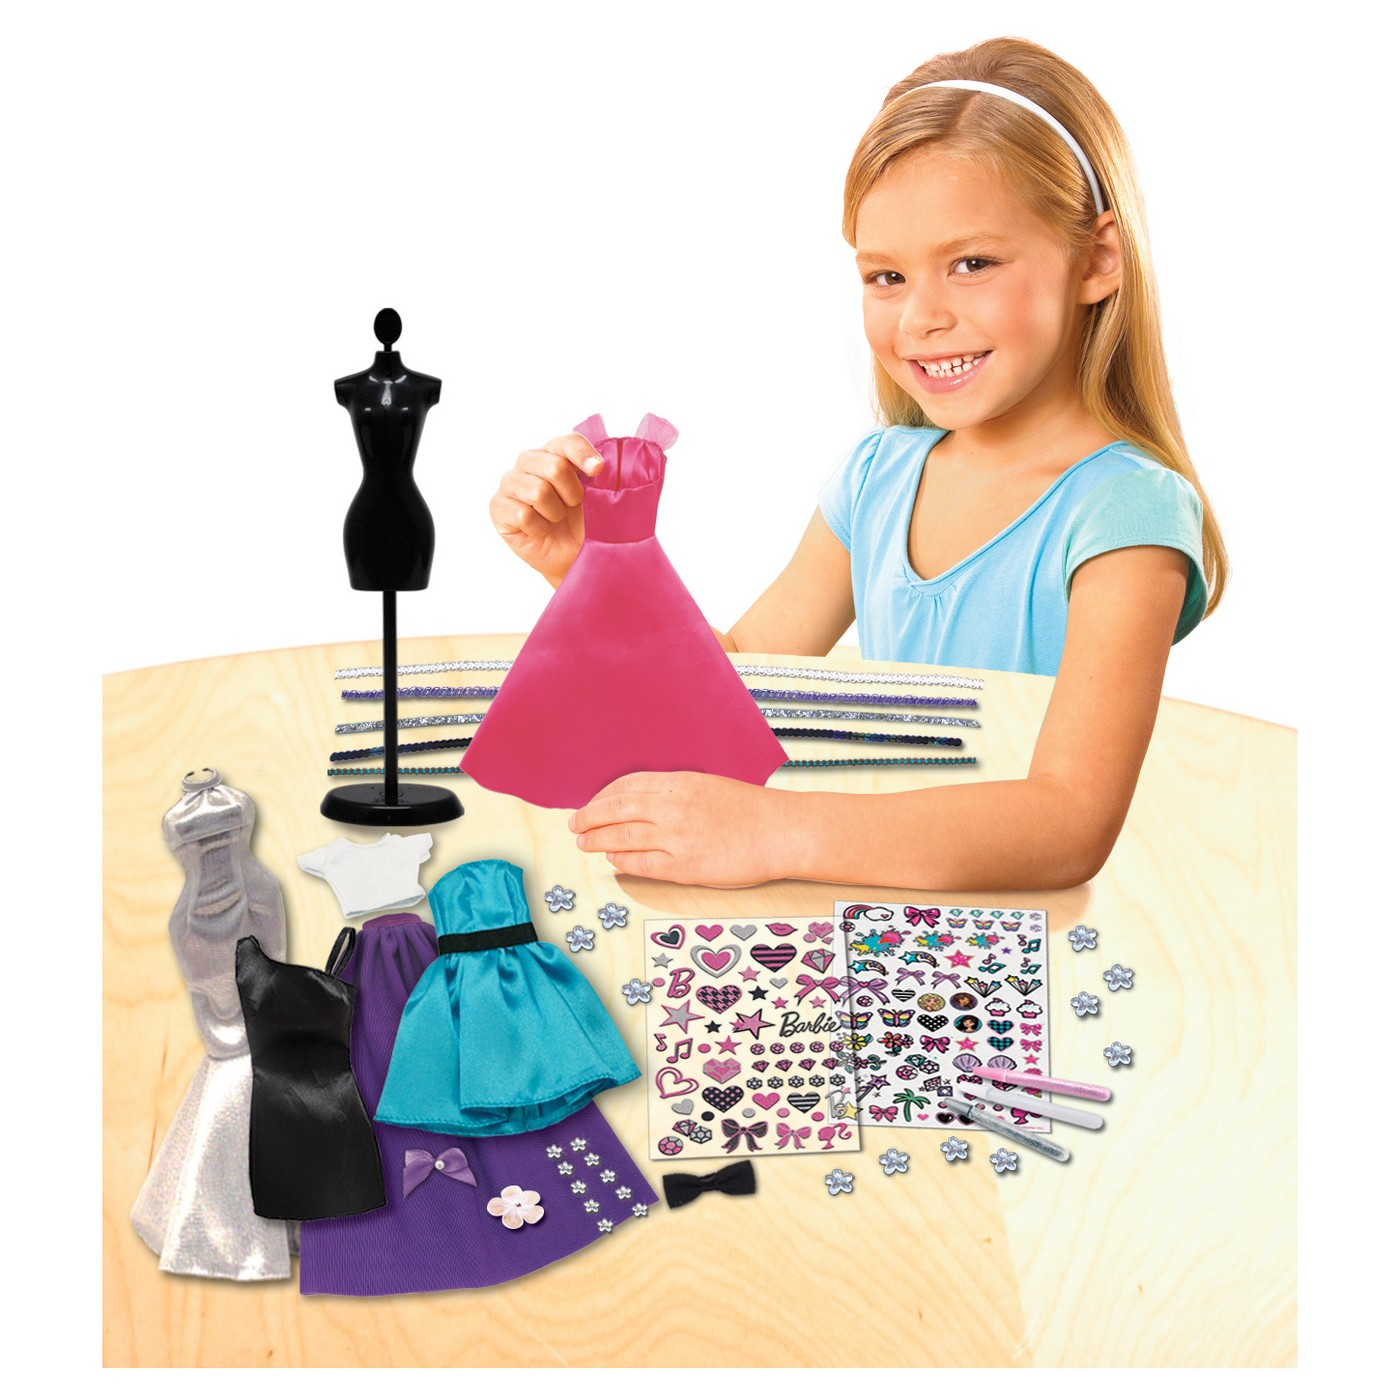 Kids Dealz Target Barbie Be A Fashion Designer 12 24 Regularly 17 49